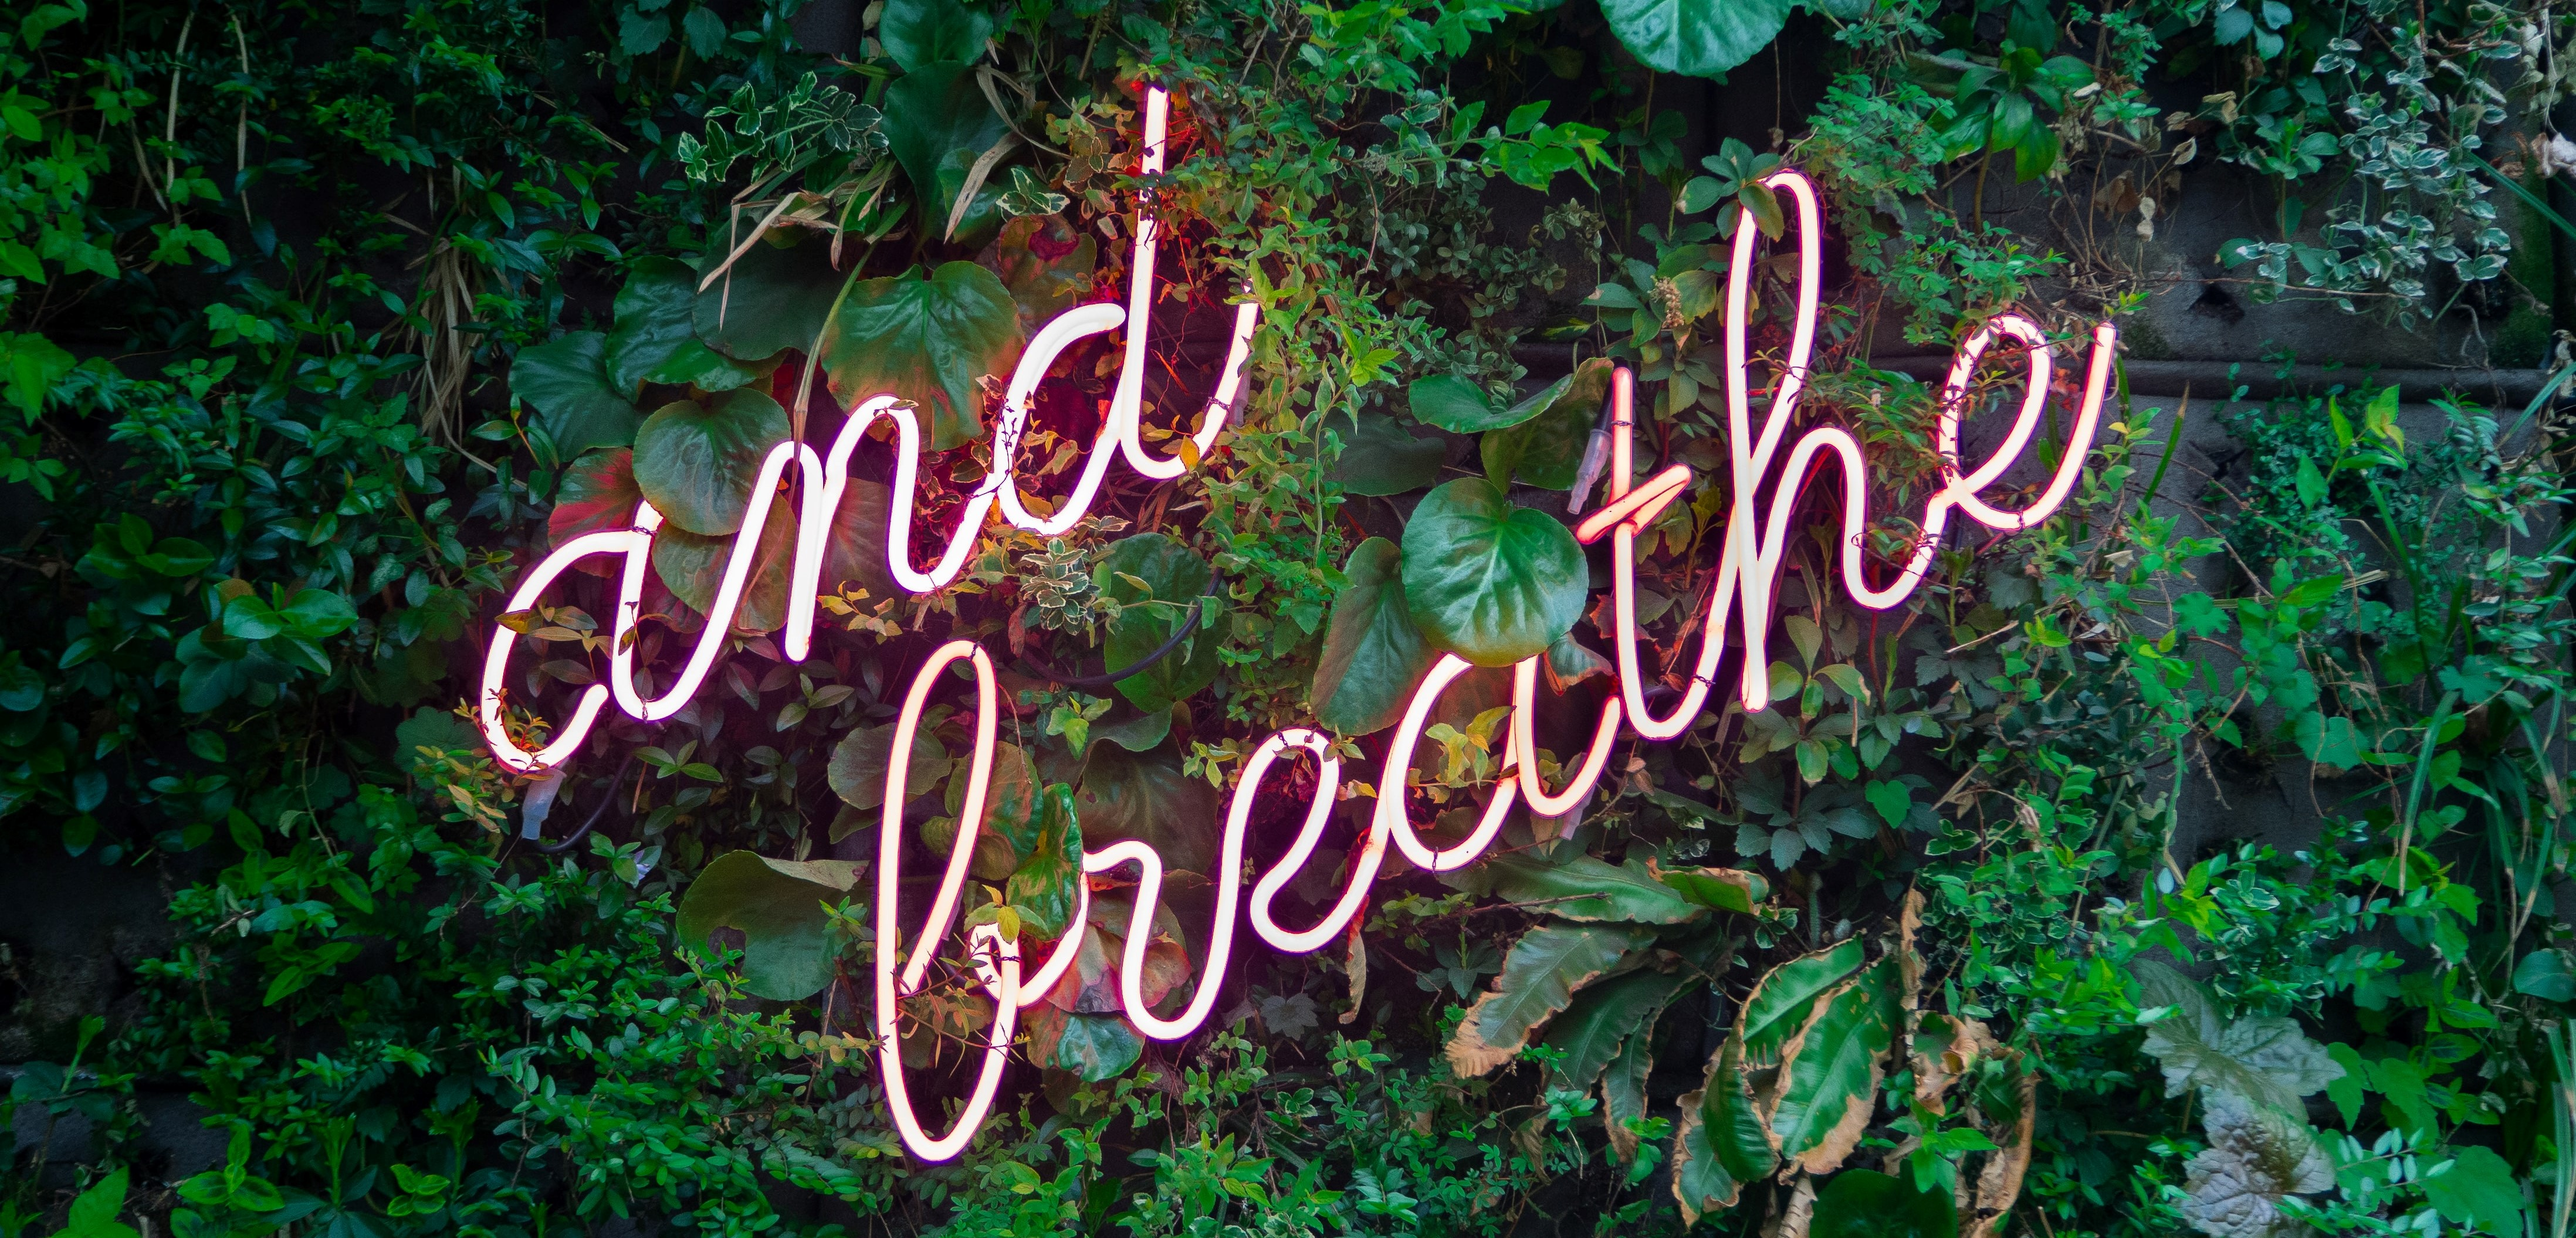 """""""and breathe"""" written in pink text against green leaves"""